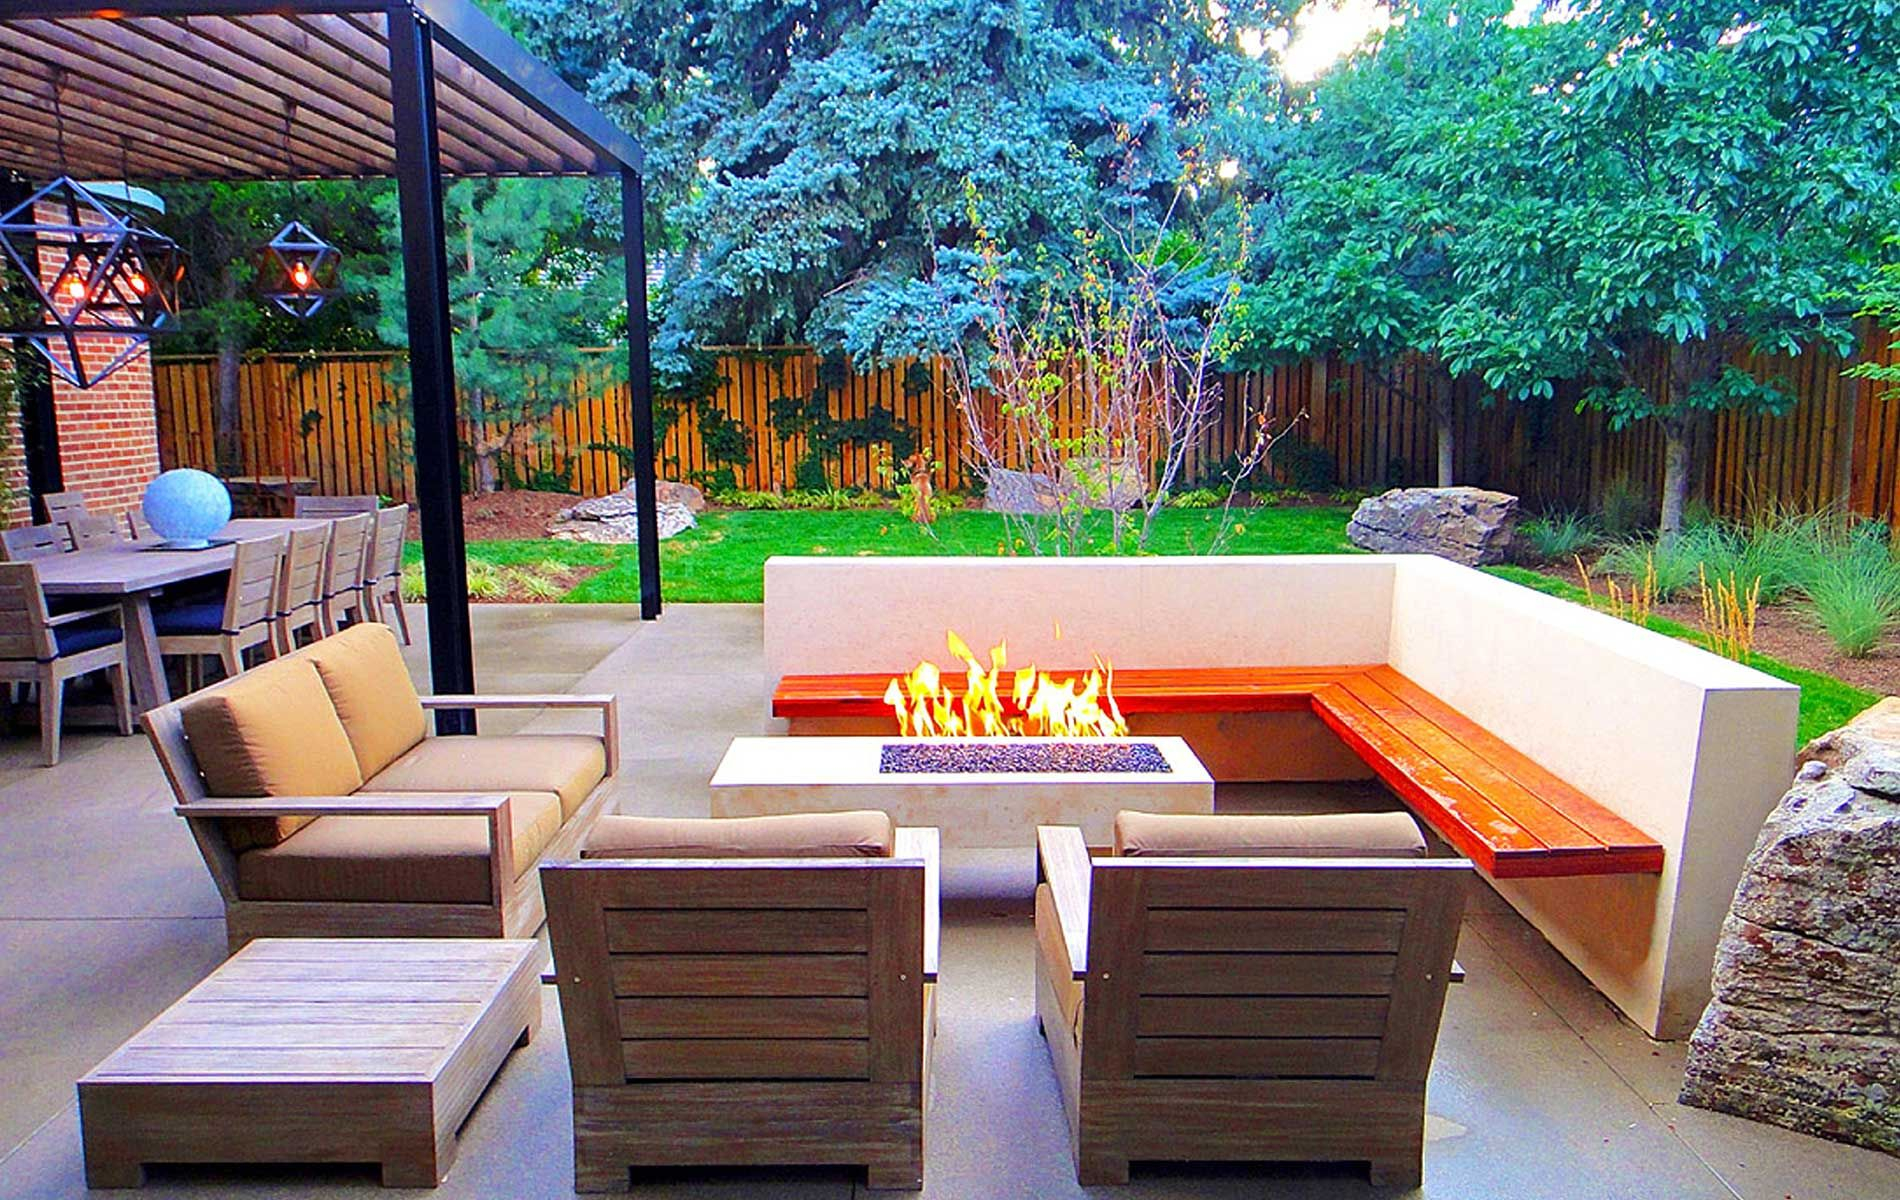 Fire Pit Patio With Pure White Concrete And Cantilevered Built In with regard to size 1900 X 1200